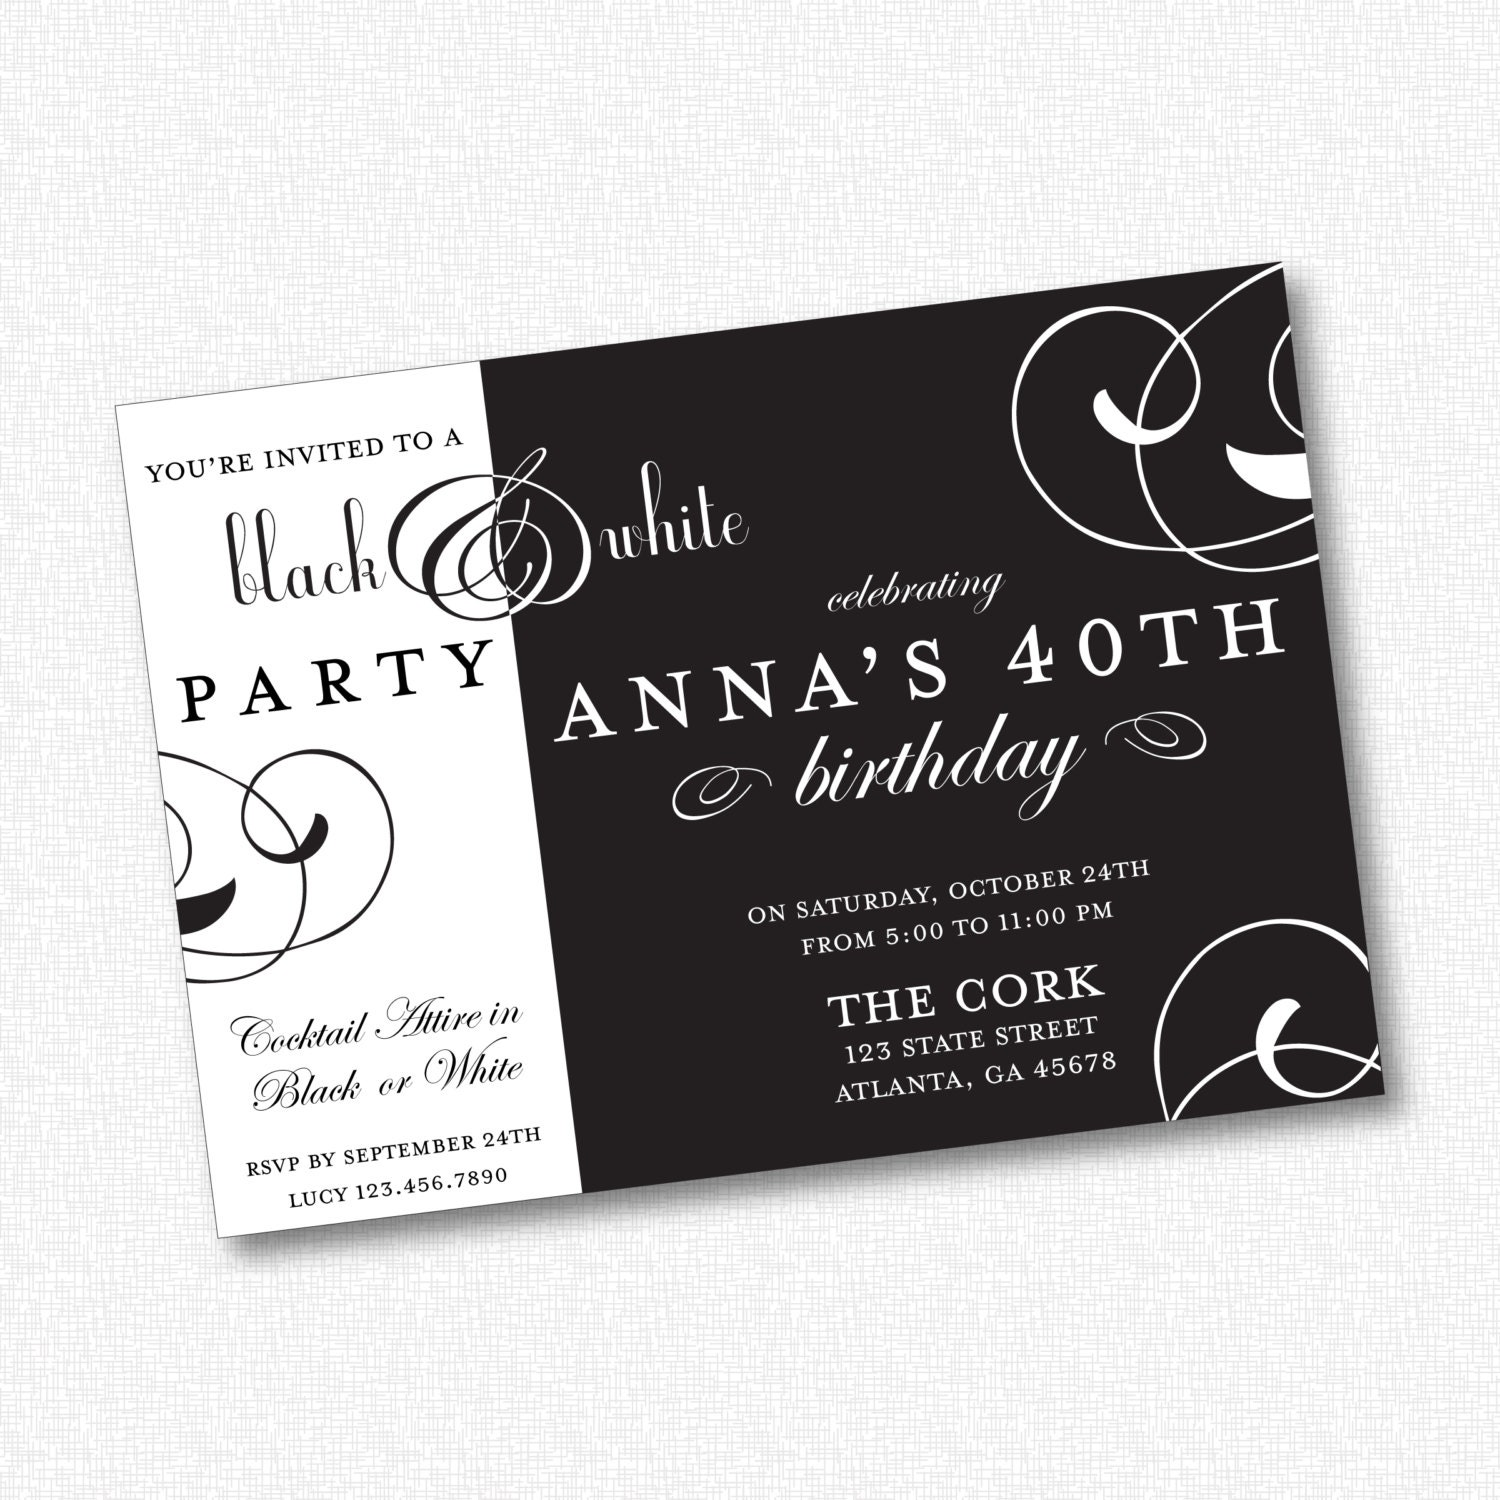 black and white theme invitation wording 28 images black and